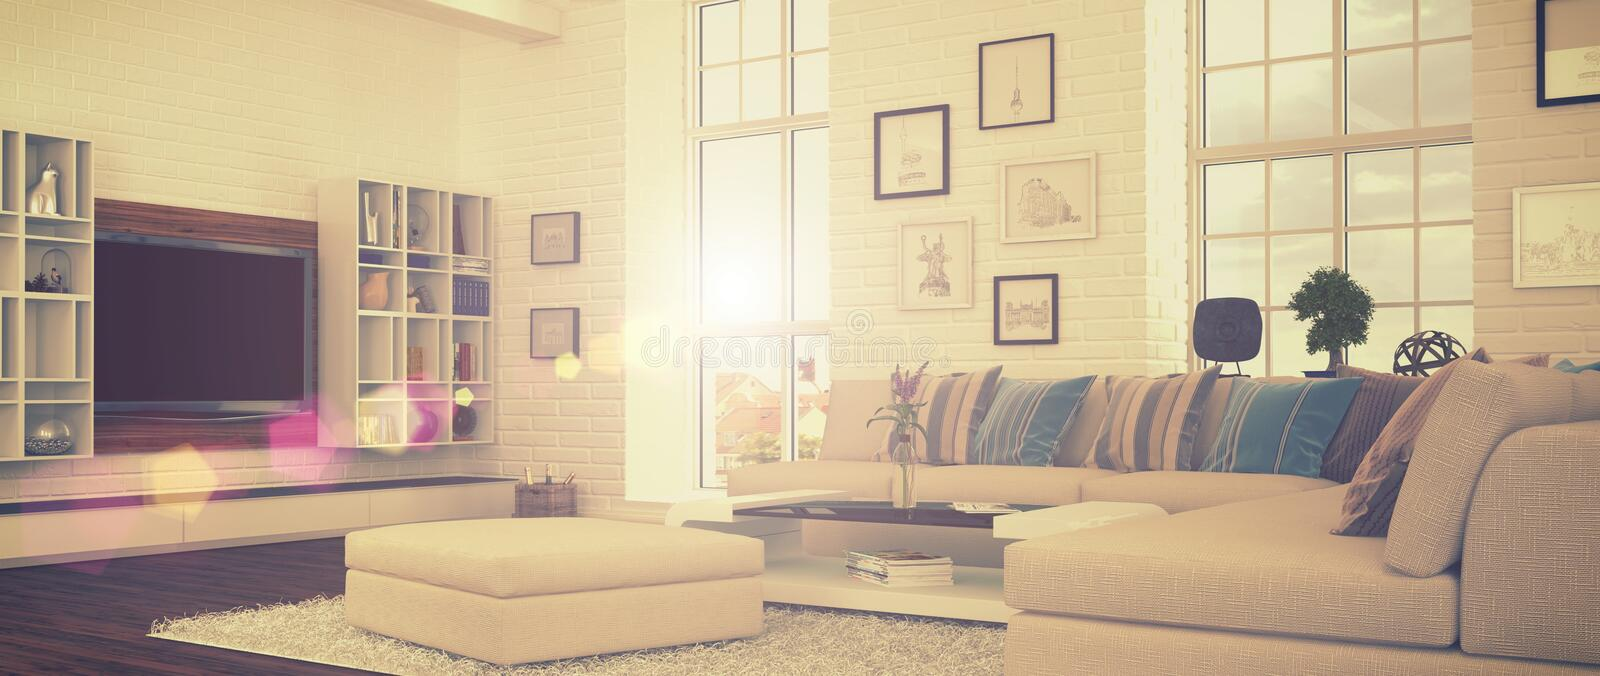 3d - modern livingroom - retro stil - sköt 41 stock illustrationer